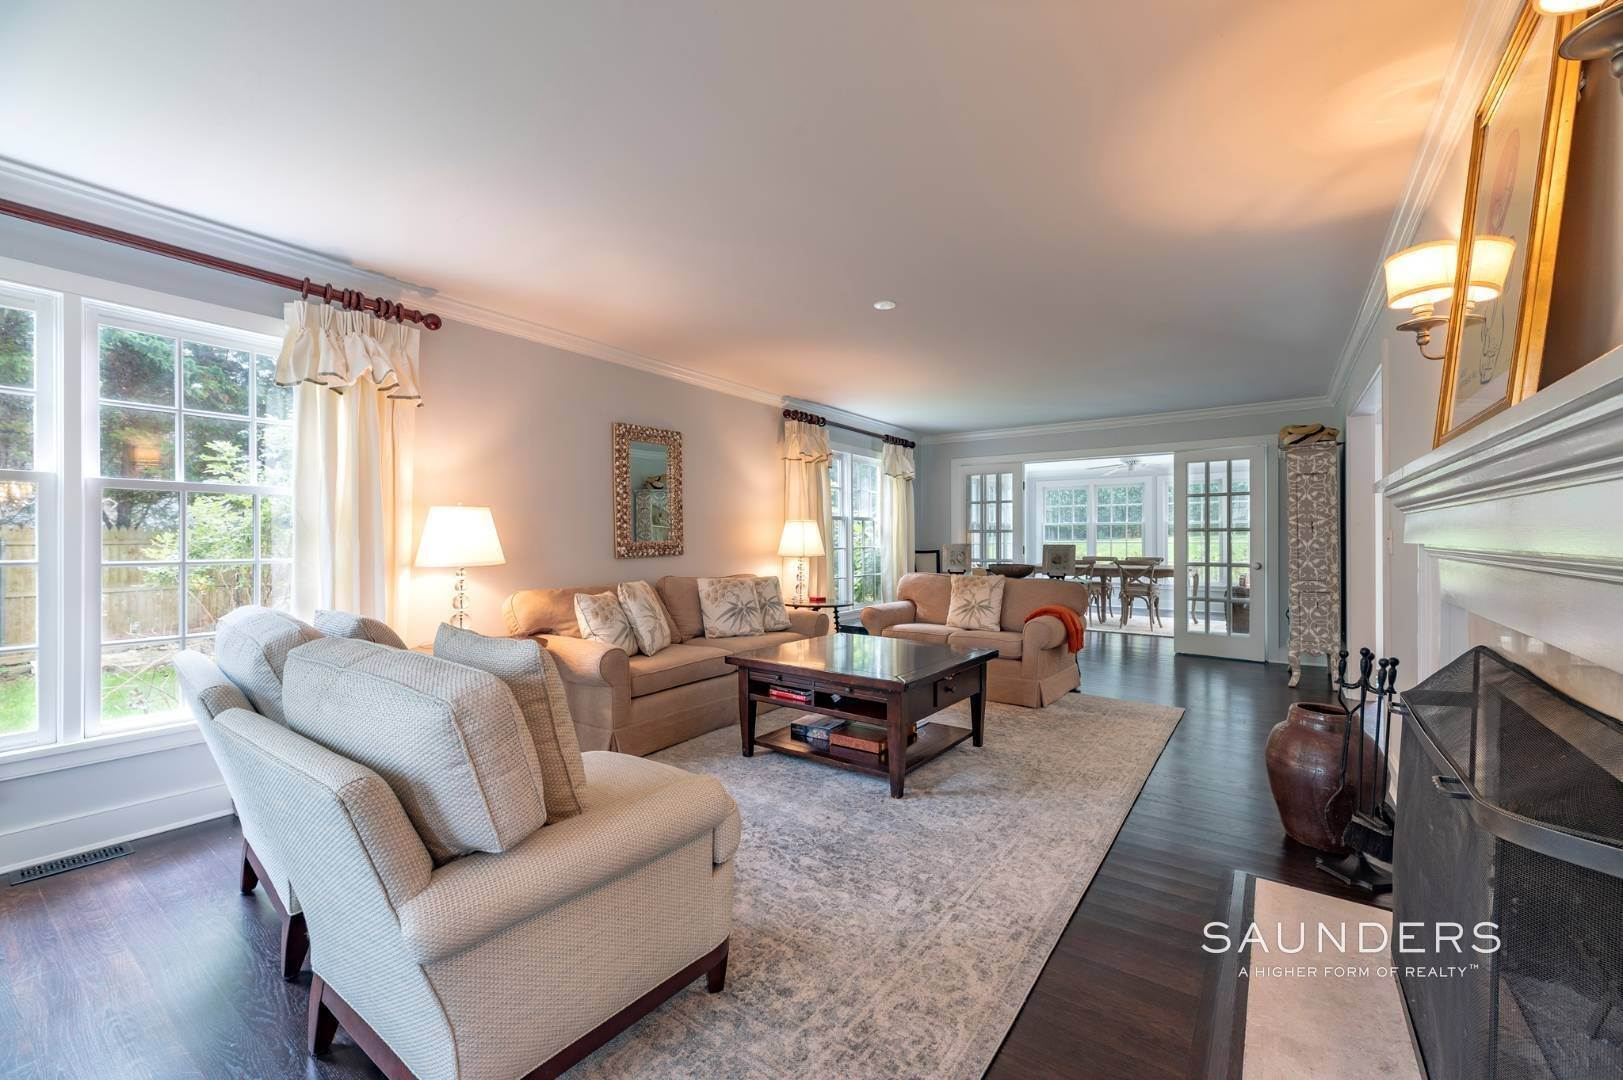 3. Single Family Homes for Sale at East Hampton Village Traditional South Of The Highway 21 Buckskill Road, East Hampton, East Hampton Town, NY 11937